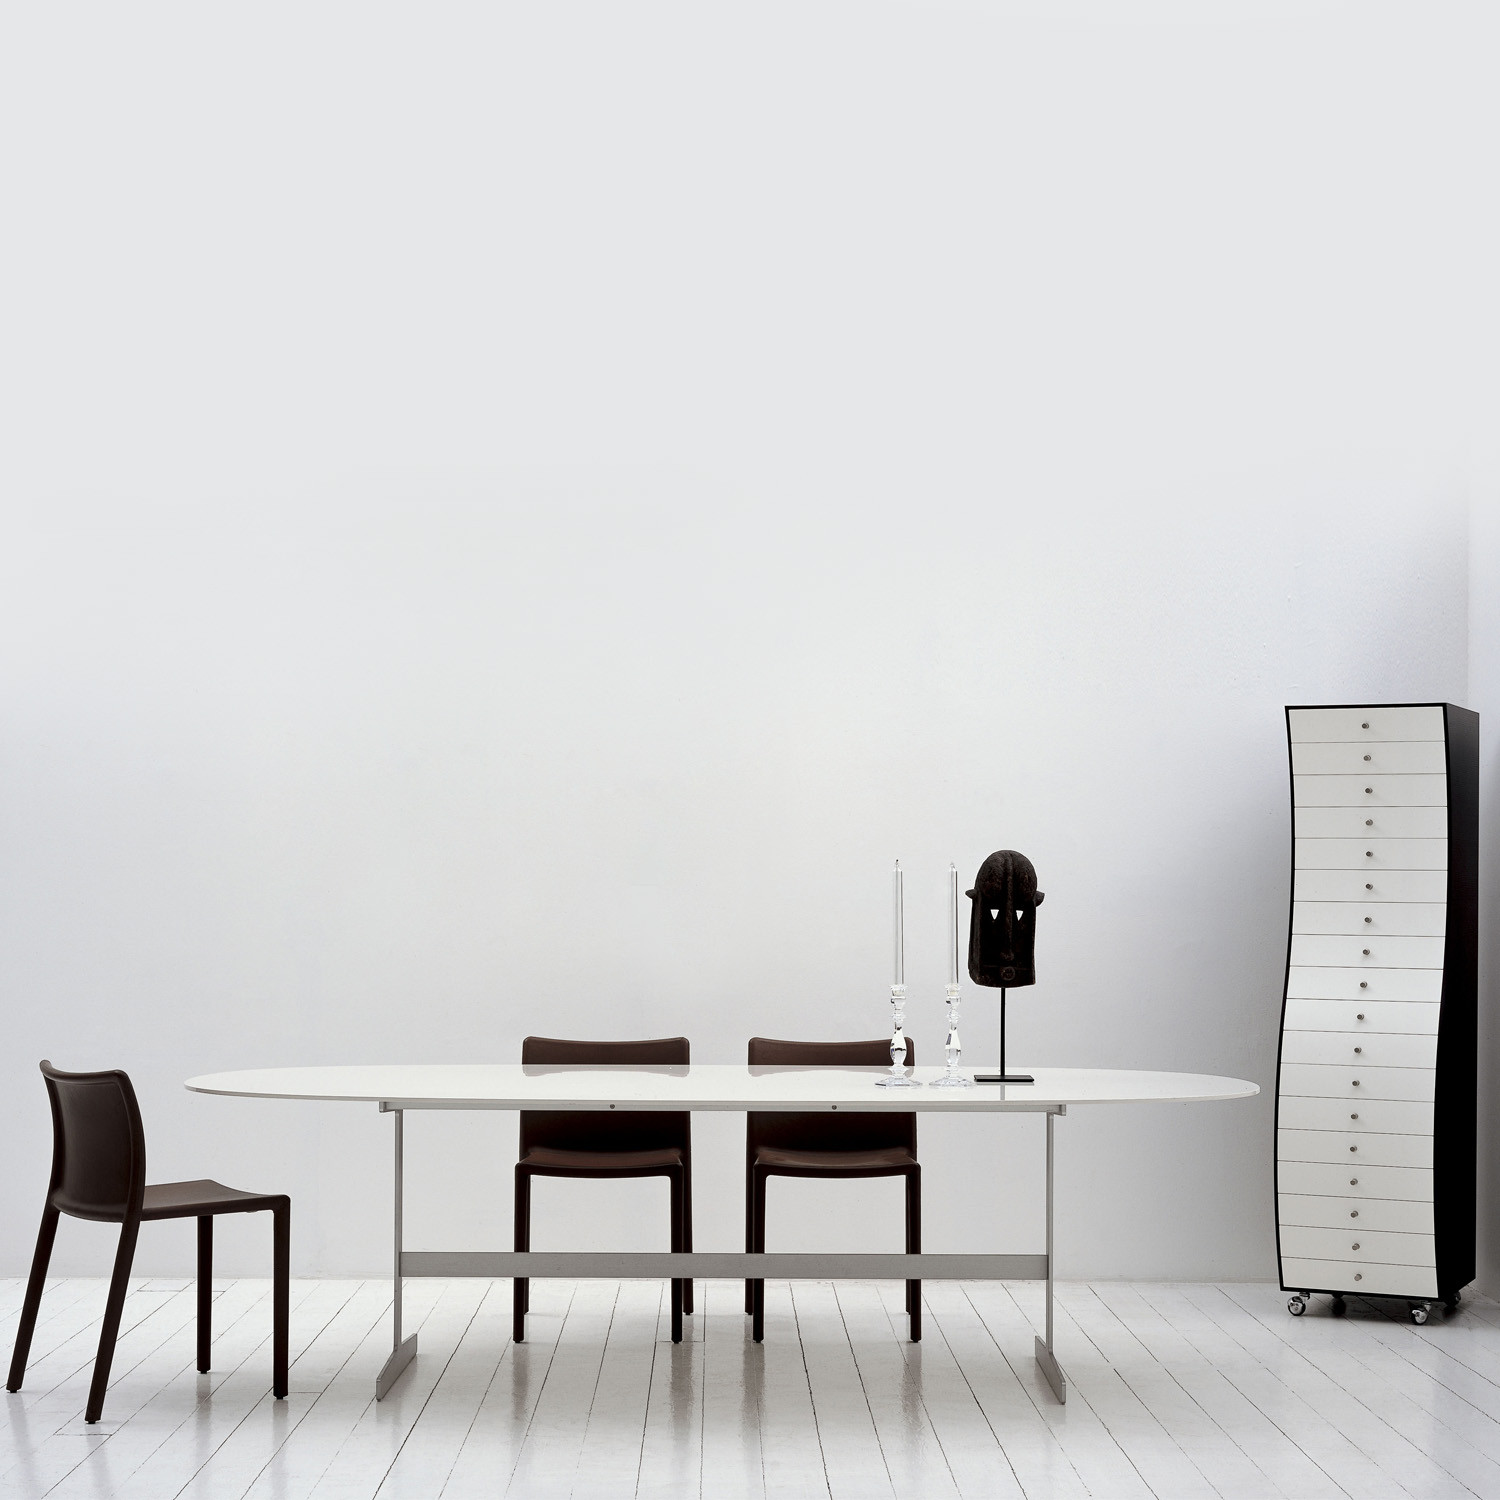 Simplon Meeting Table by Cappellini